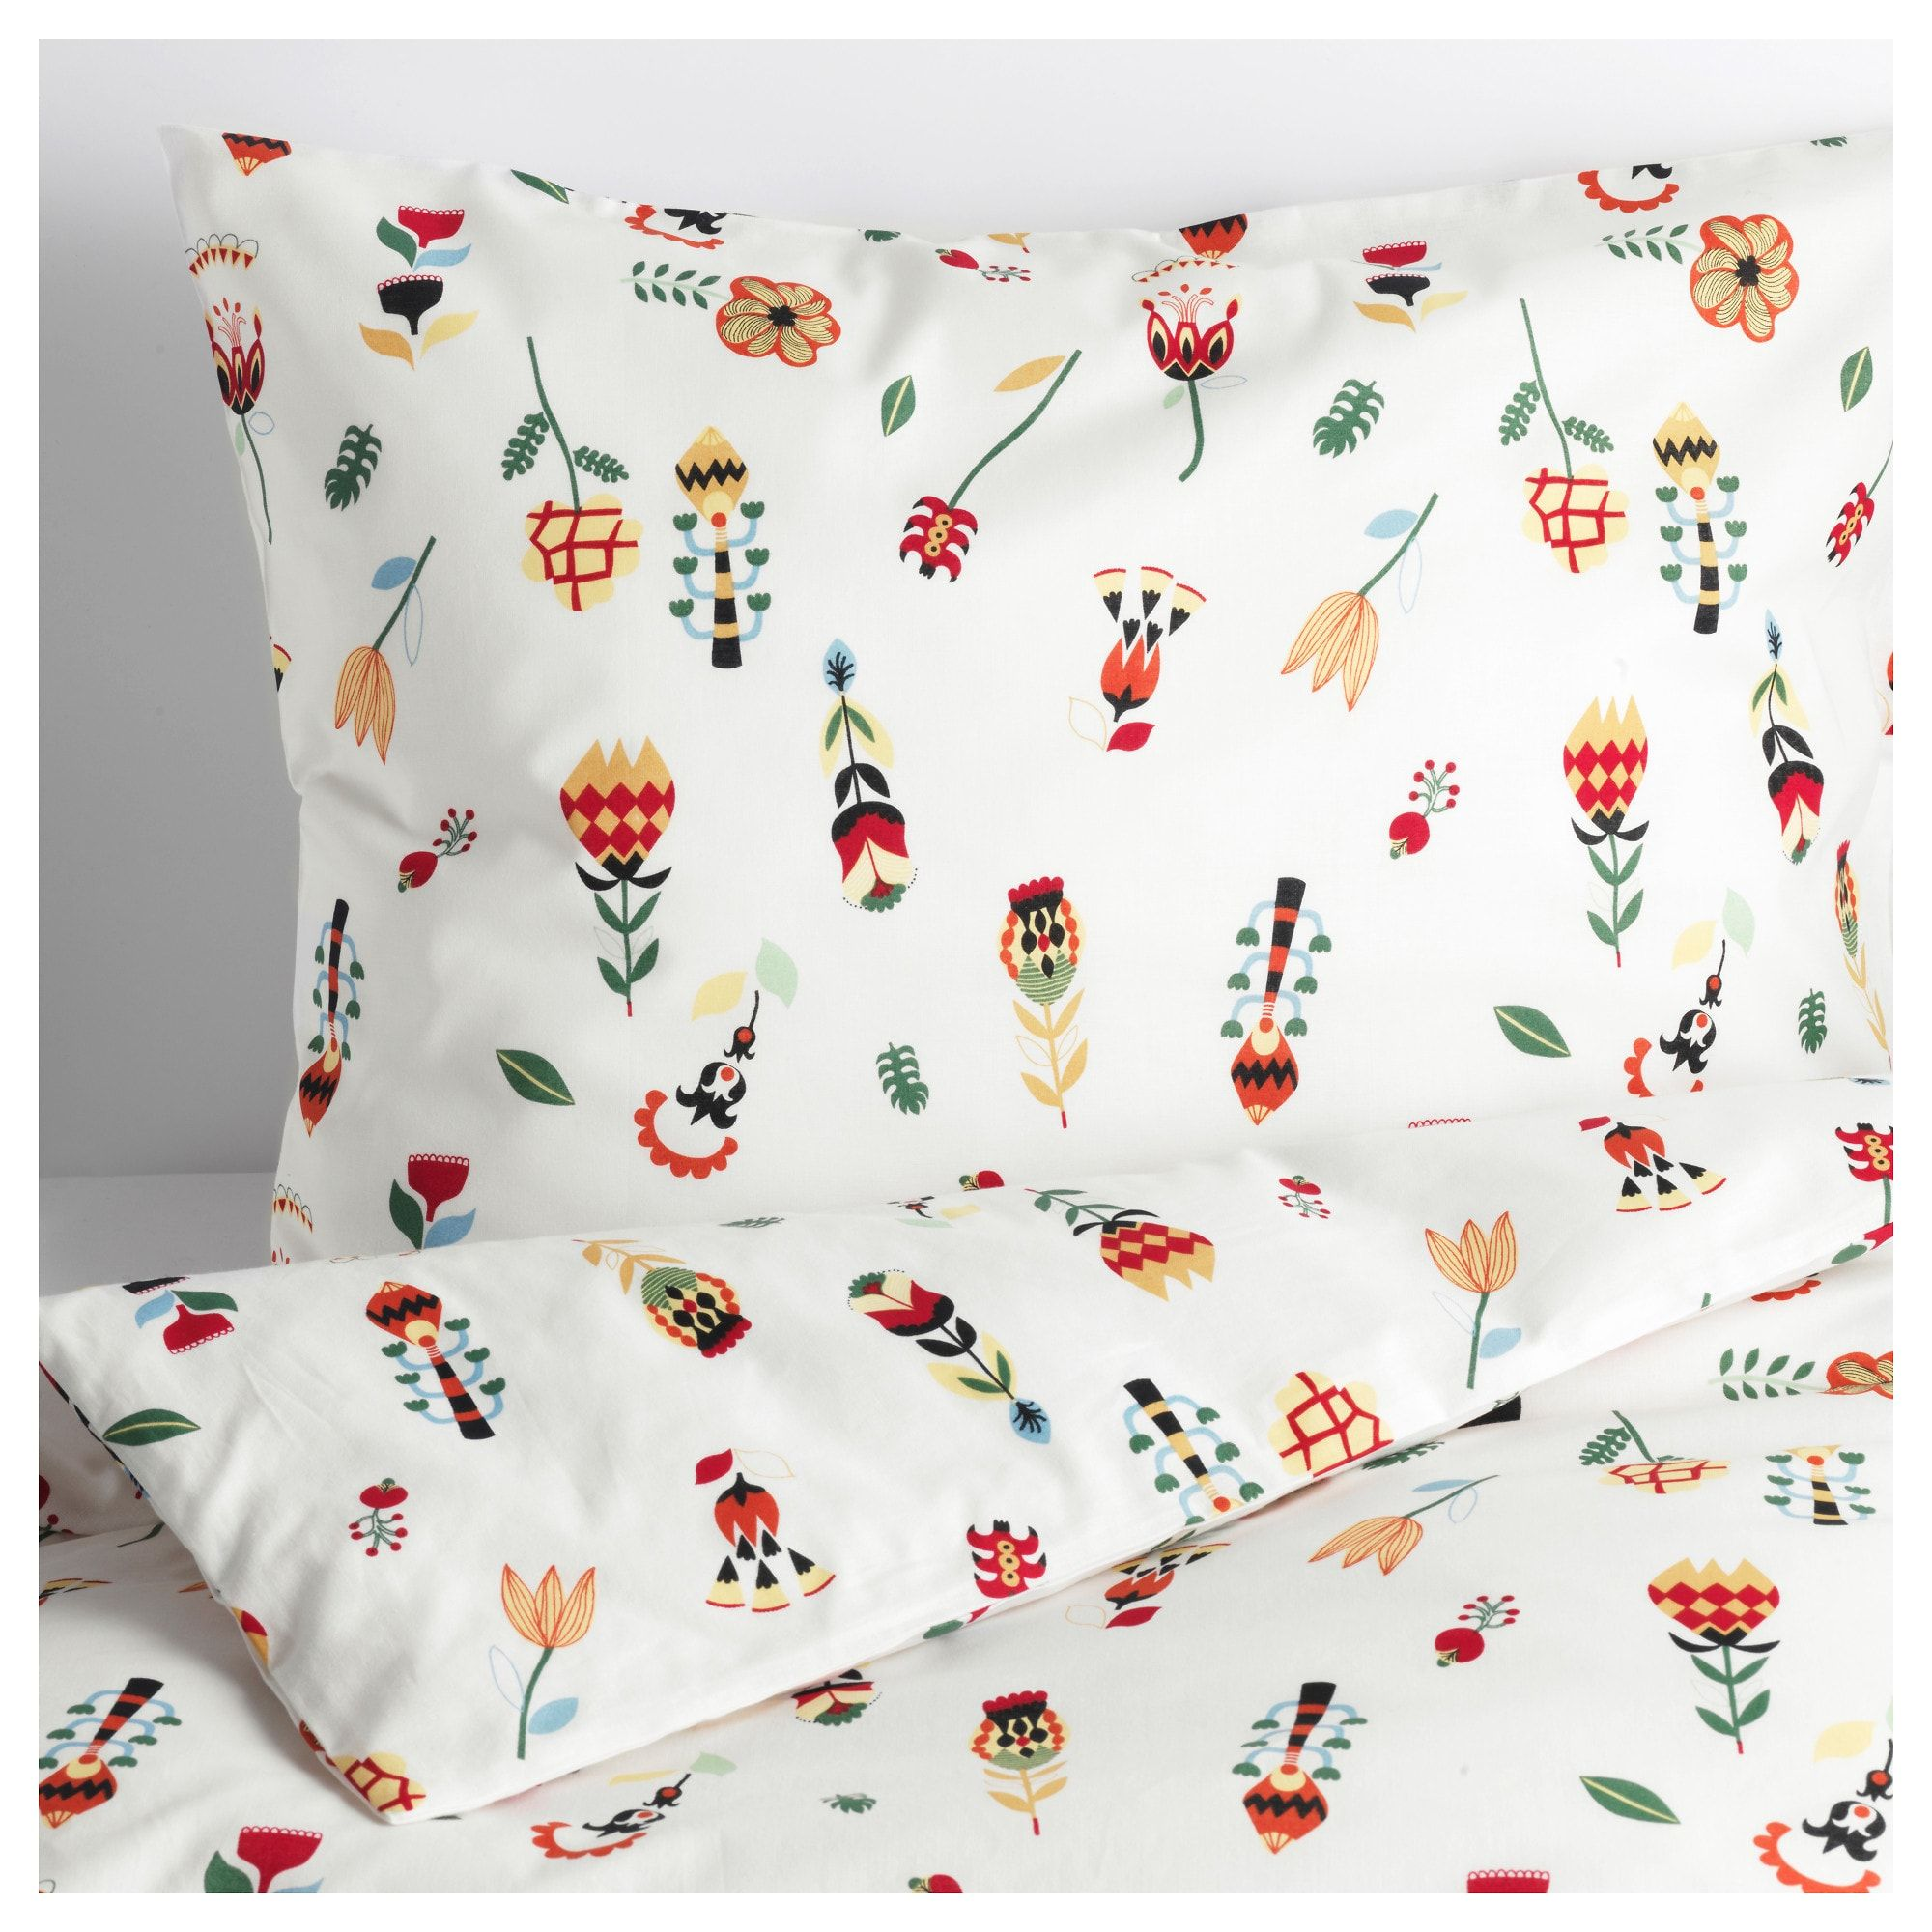 IKEA US Furniture and Home Furnishings Bed linens